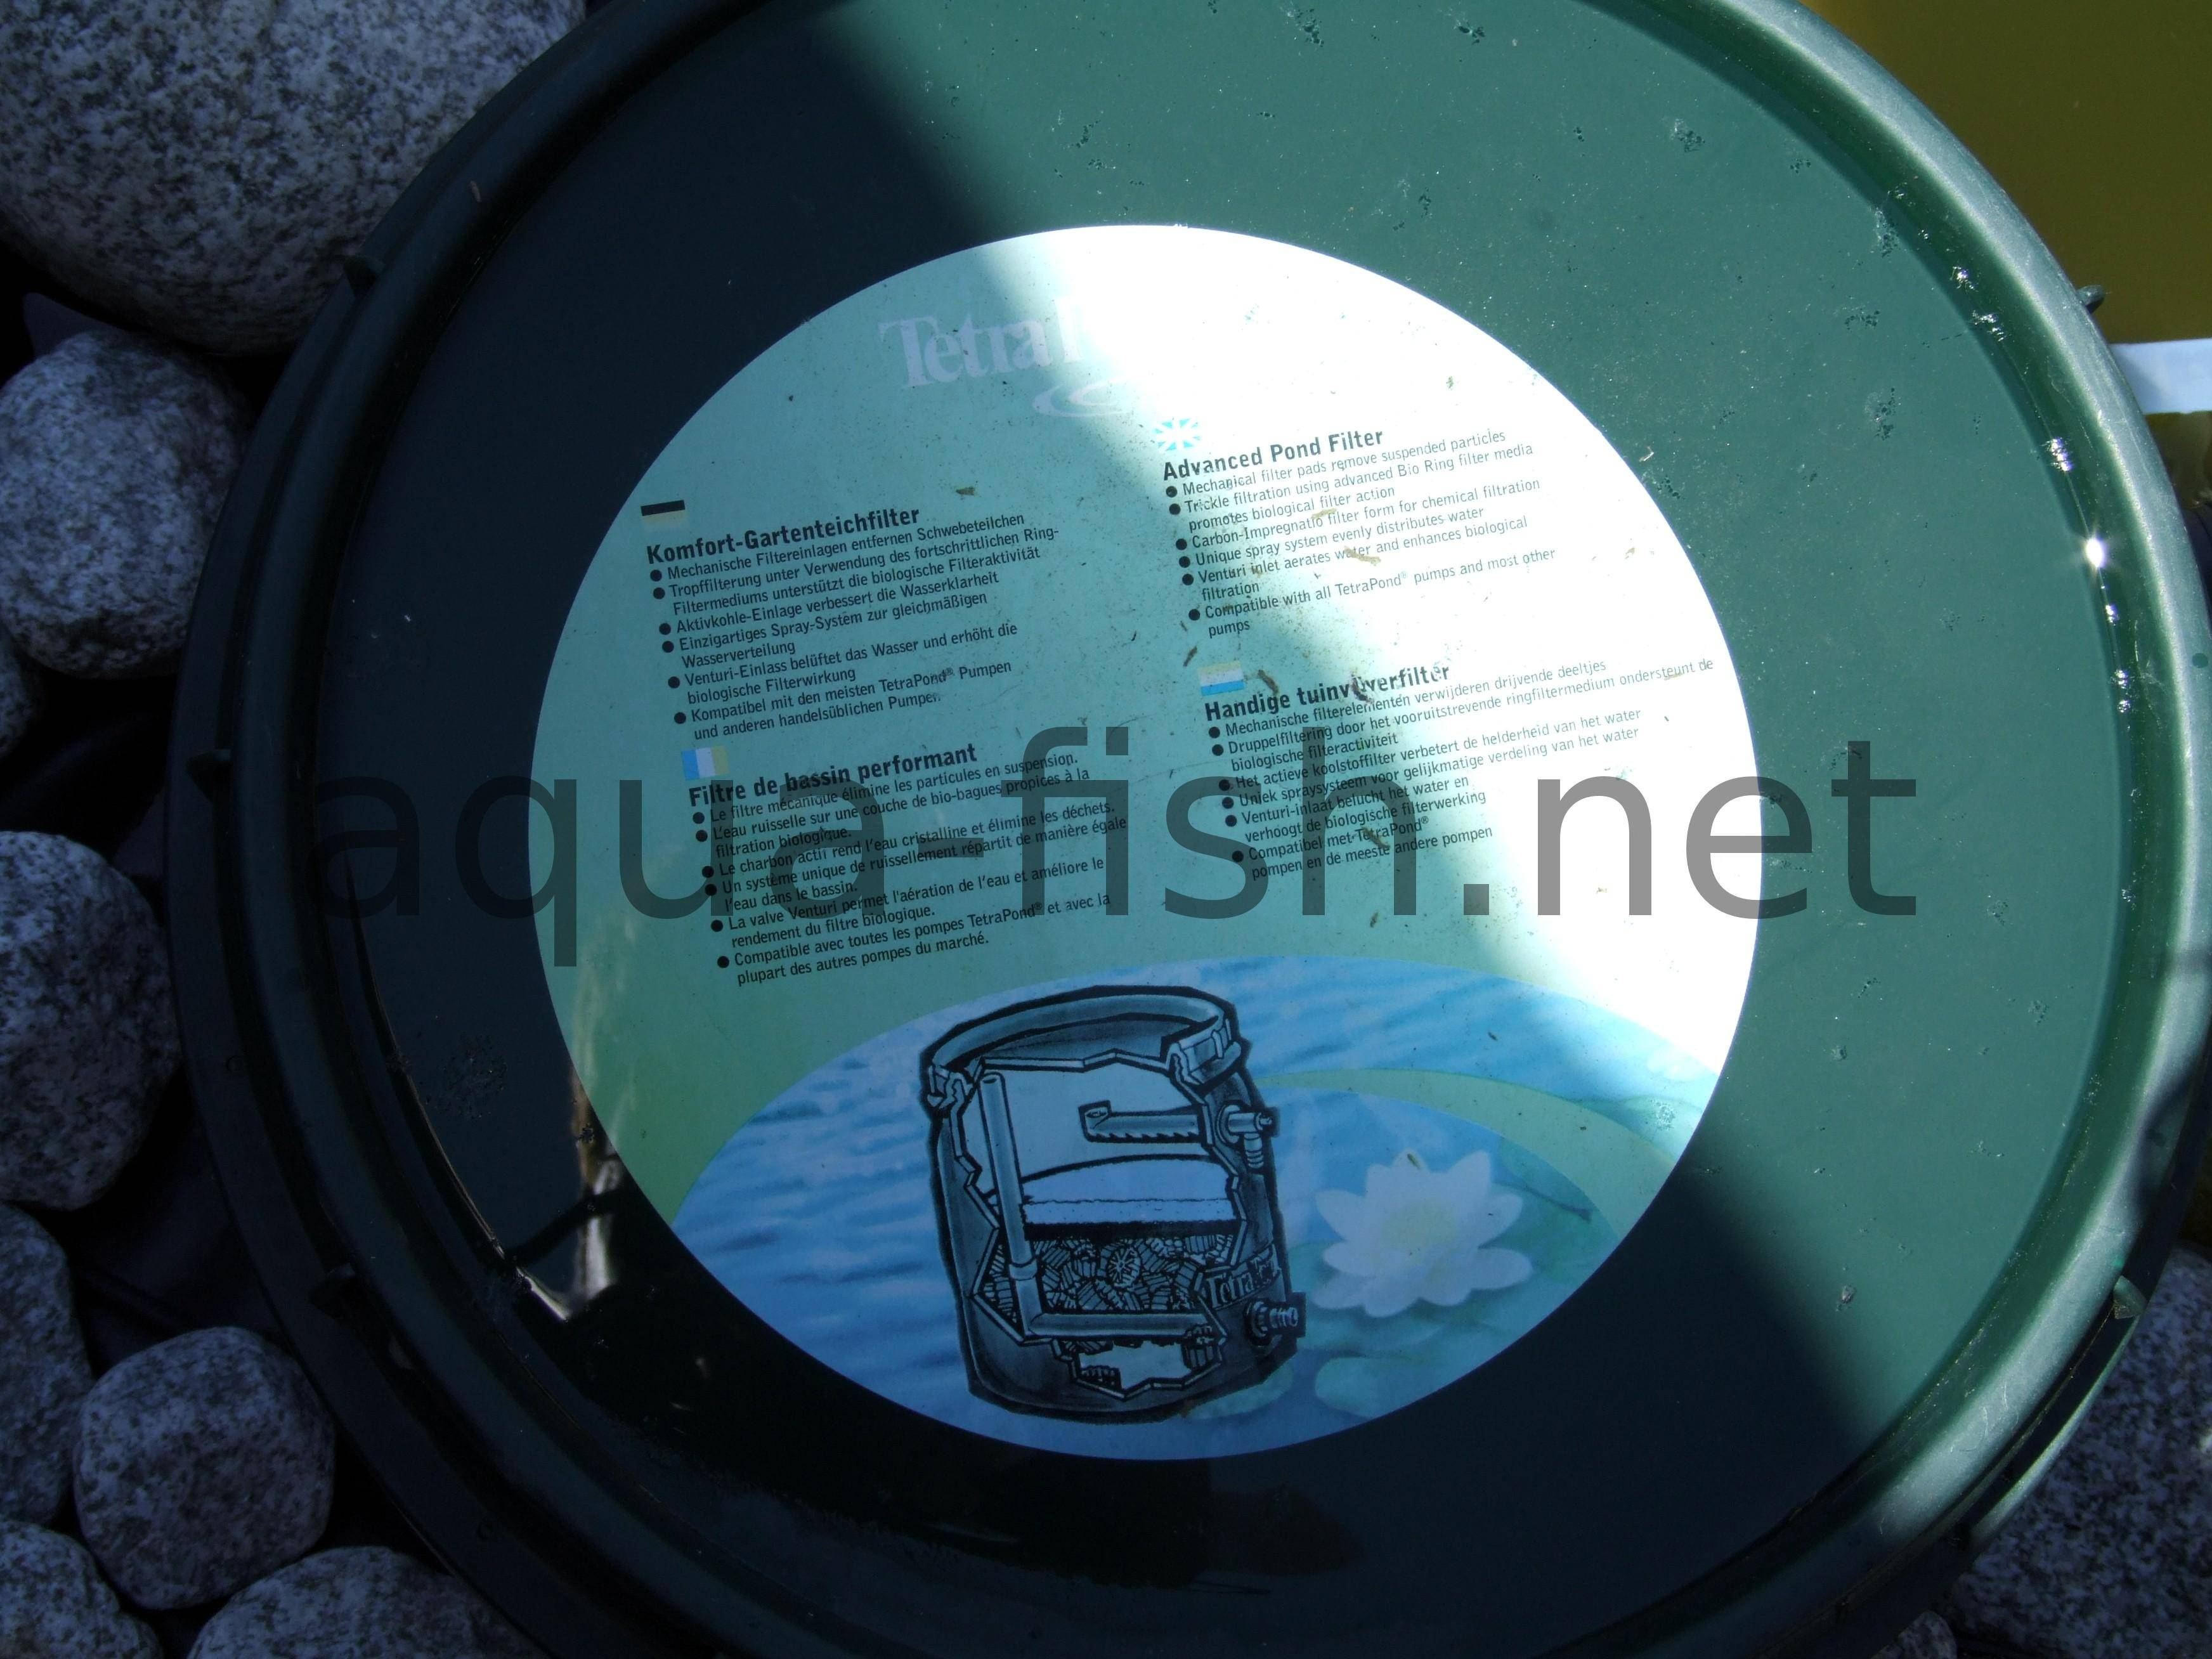 a prehensive guide on using and choosing filters for a fish pond